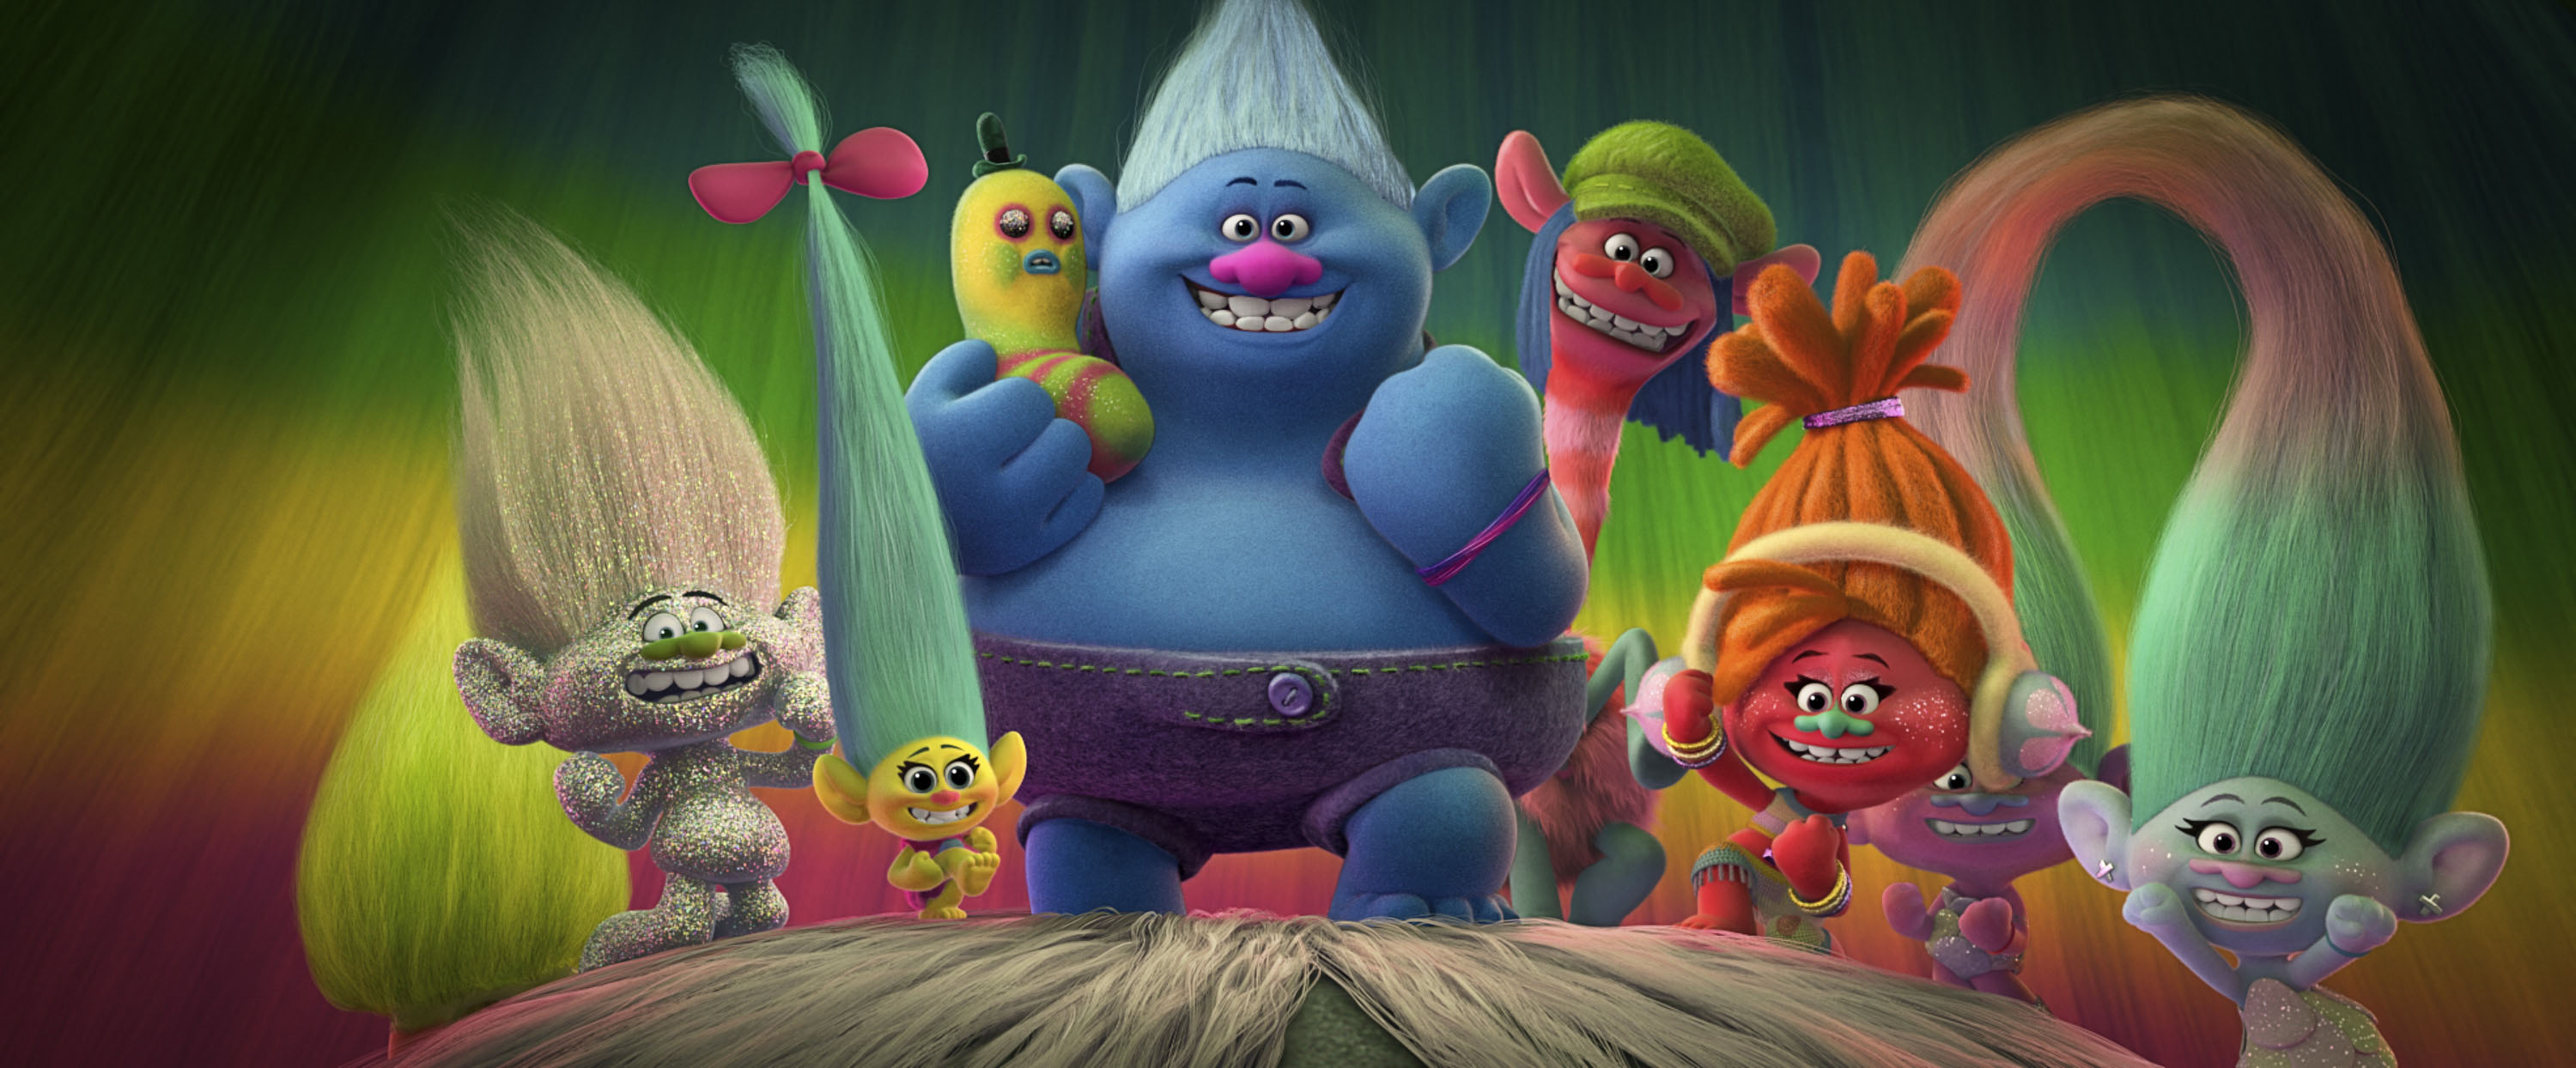 Trolls Movie Review Rolling Stone